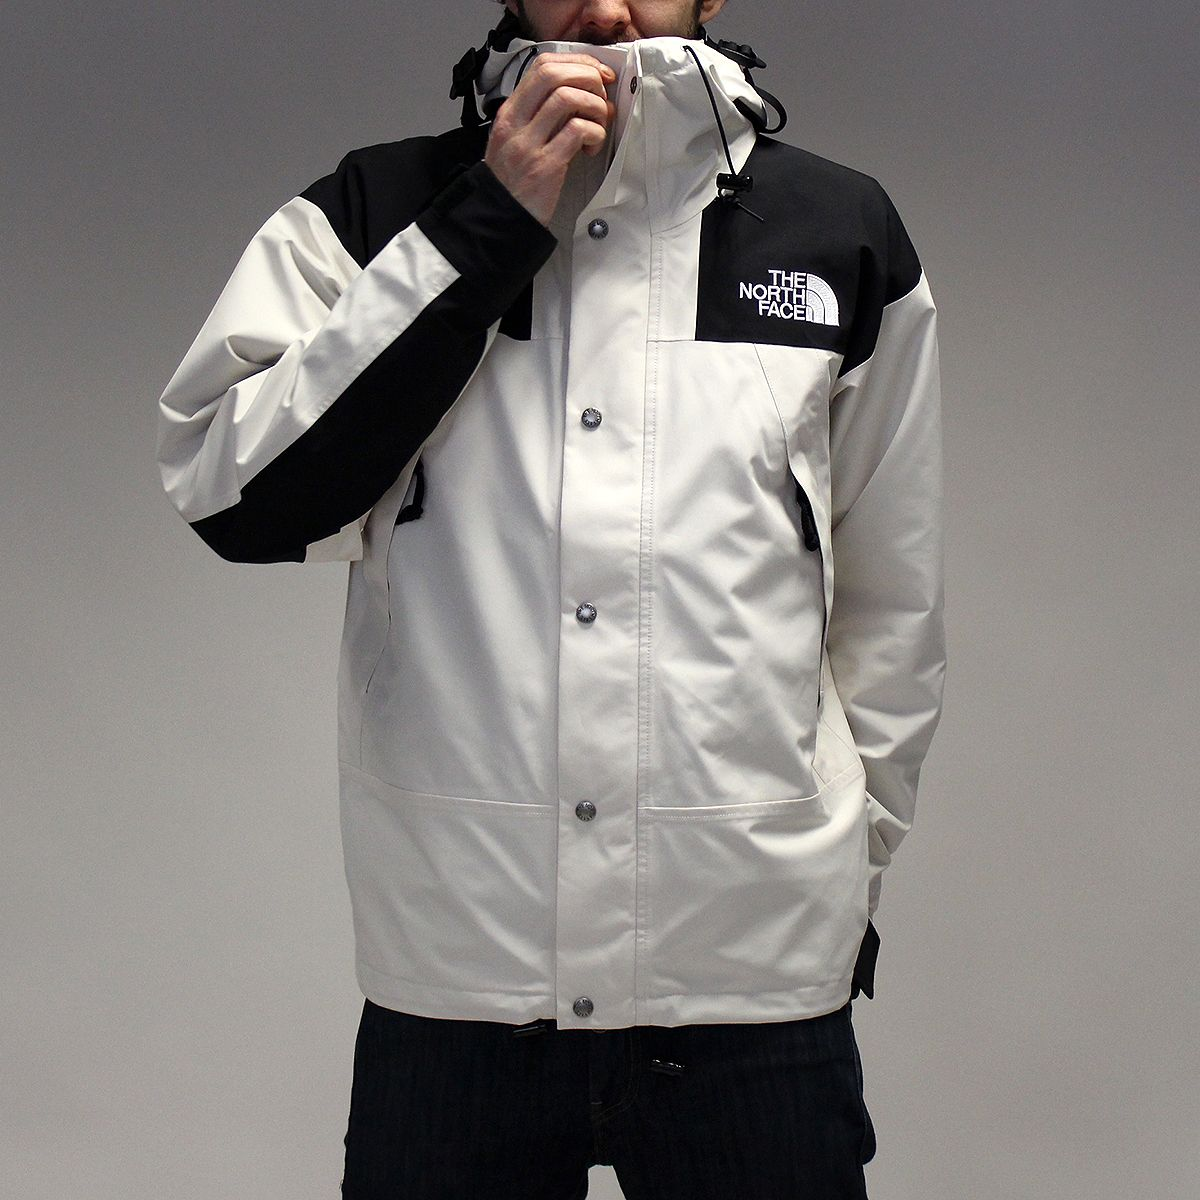 7c4a66162f2e3 THE NORTH FACE 1990 MOUNTAIN GTX JACKET – VINTAGE WHITE | COLOR ...